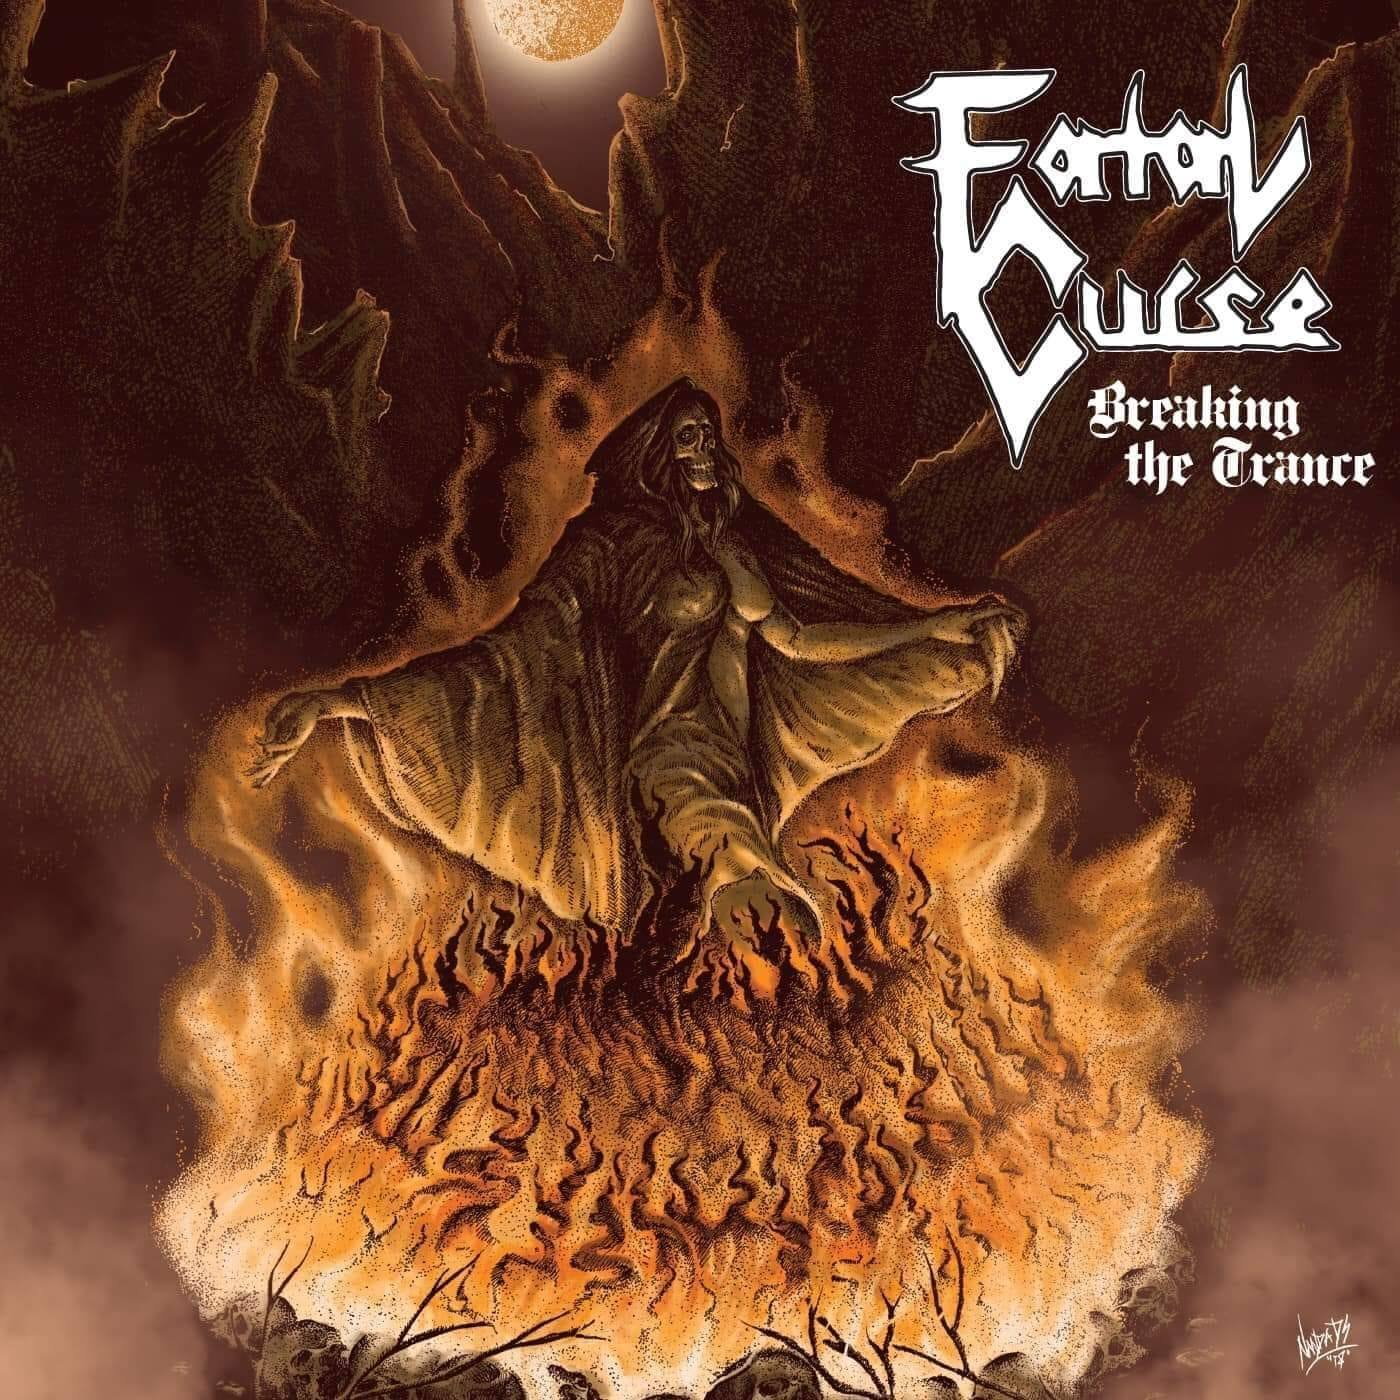 Fatal Curse Breaking the Trance